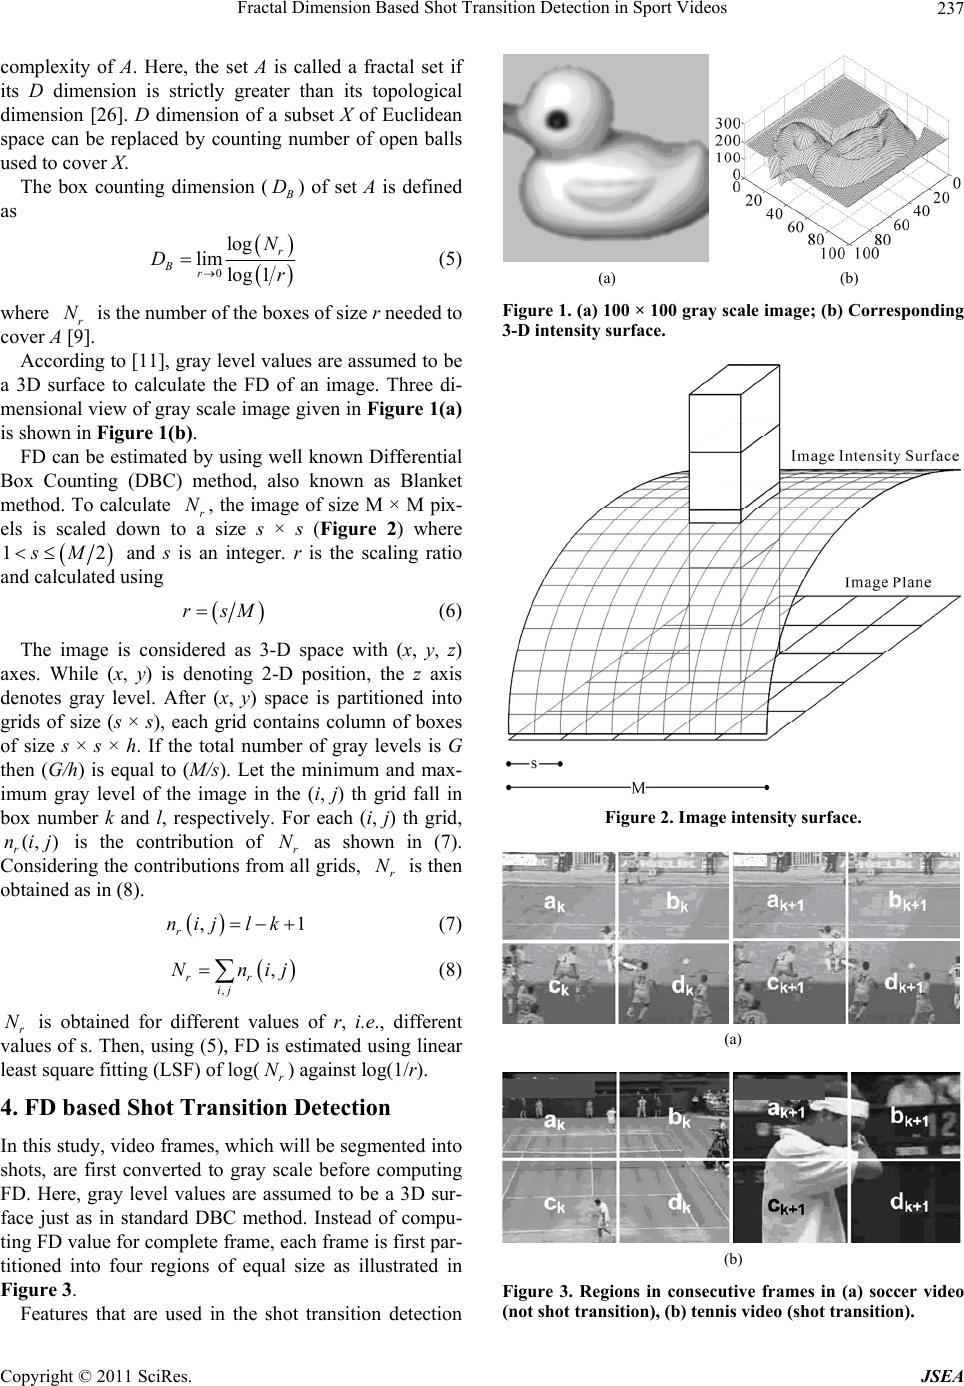 thesis on fractal dimension The purpose of this thesis is to explore the interaction between people's financial behaviour and the market's fractal characteristics in particular, i have been interested in the hurst exponent, a measure of a series' fractal dimension and autocorrelation in chapter 2 i show that people exhibit a high level of sensitivity to the.